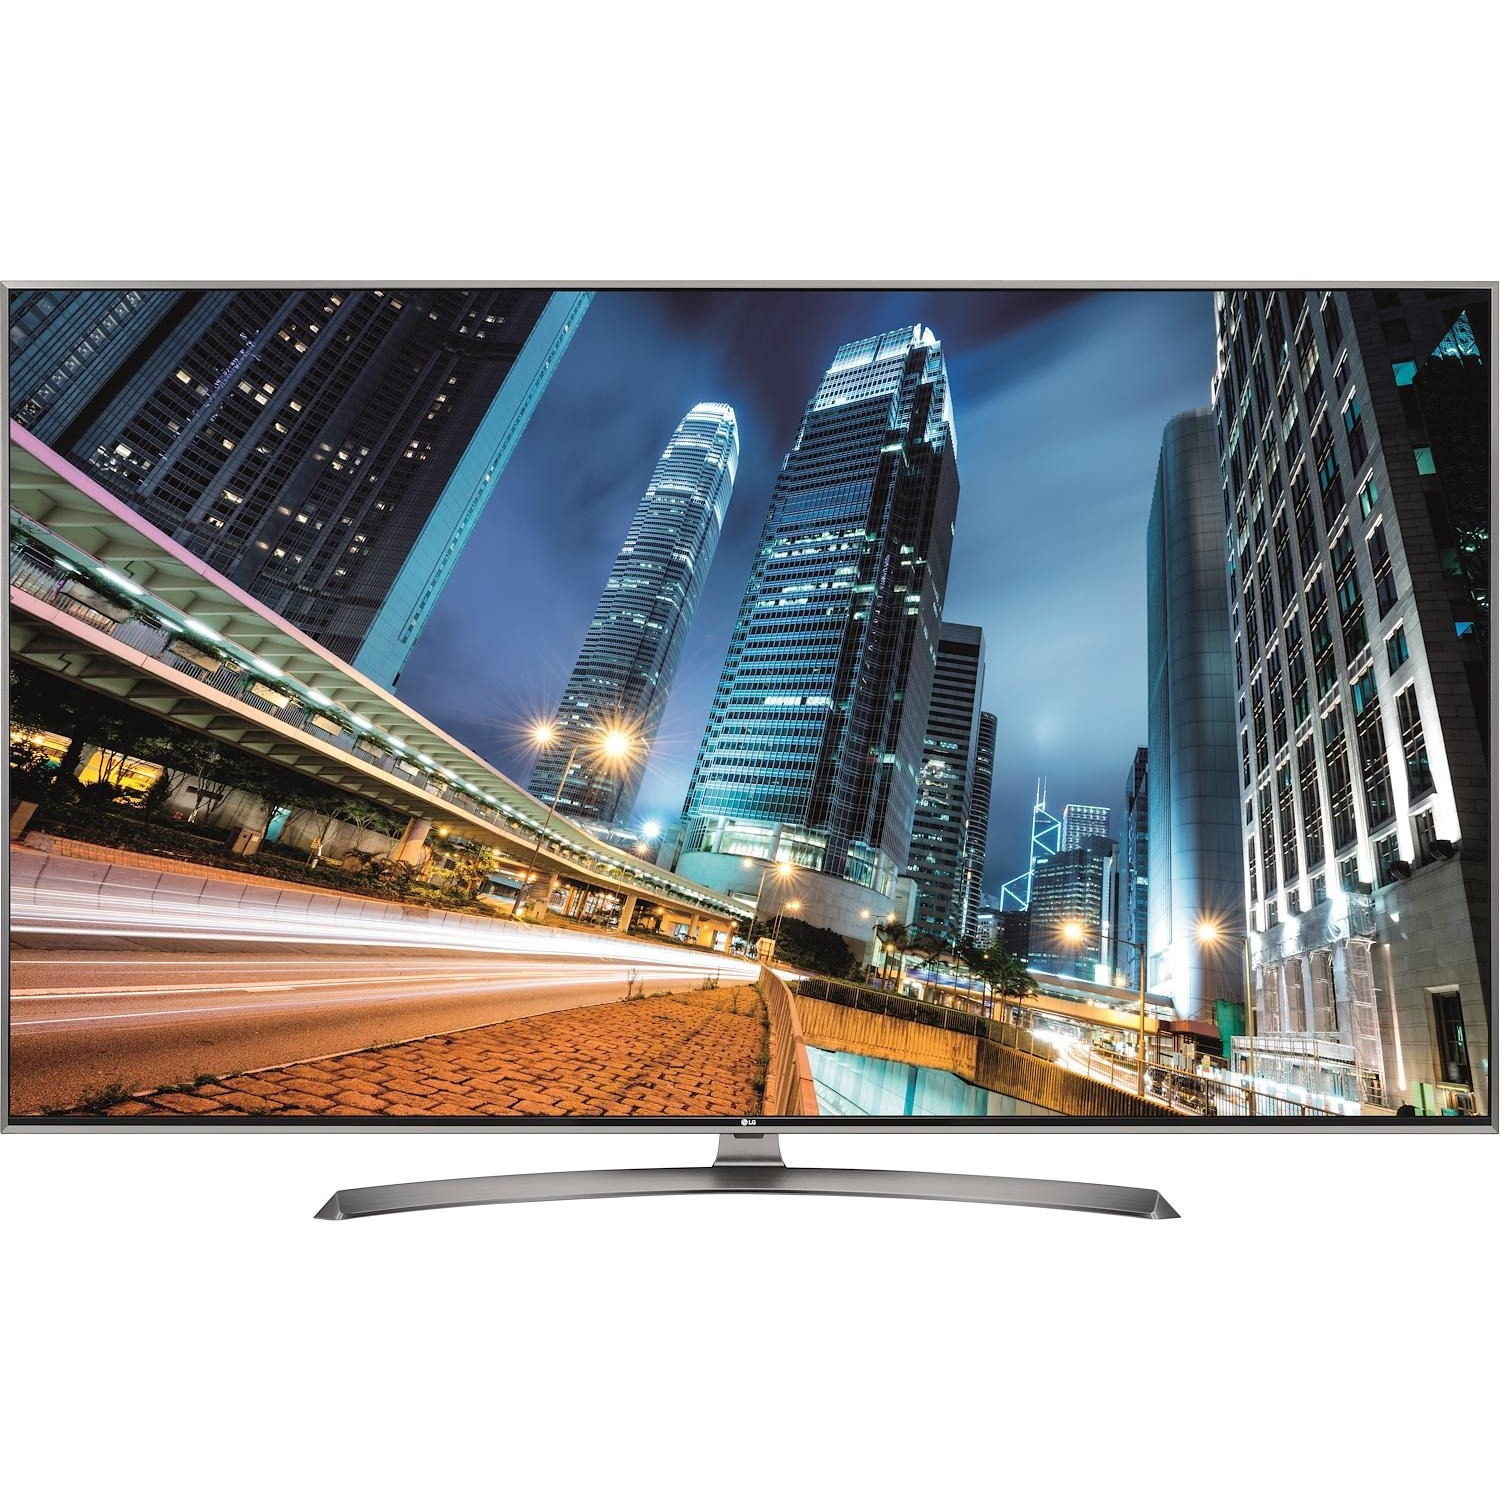 Immagine per TV LED Smart 4K UHD LG 55UJ750V da DIMOStore